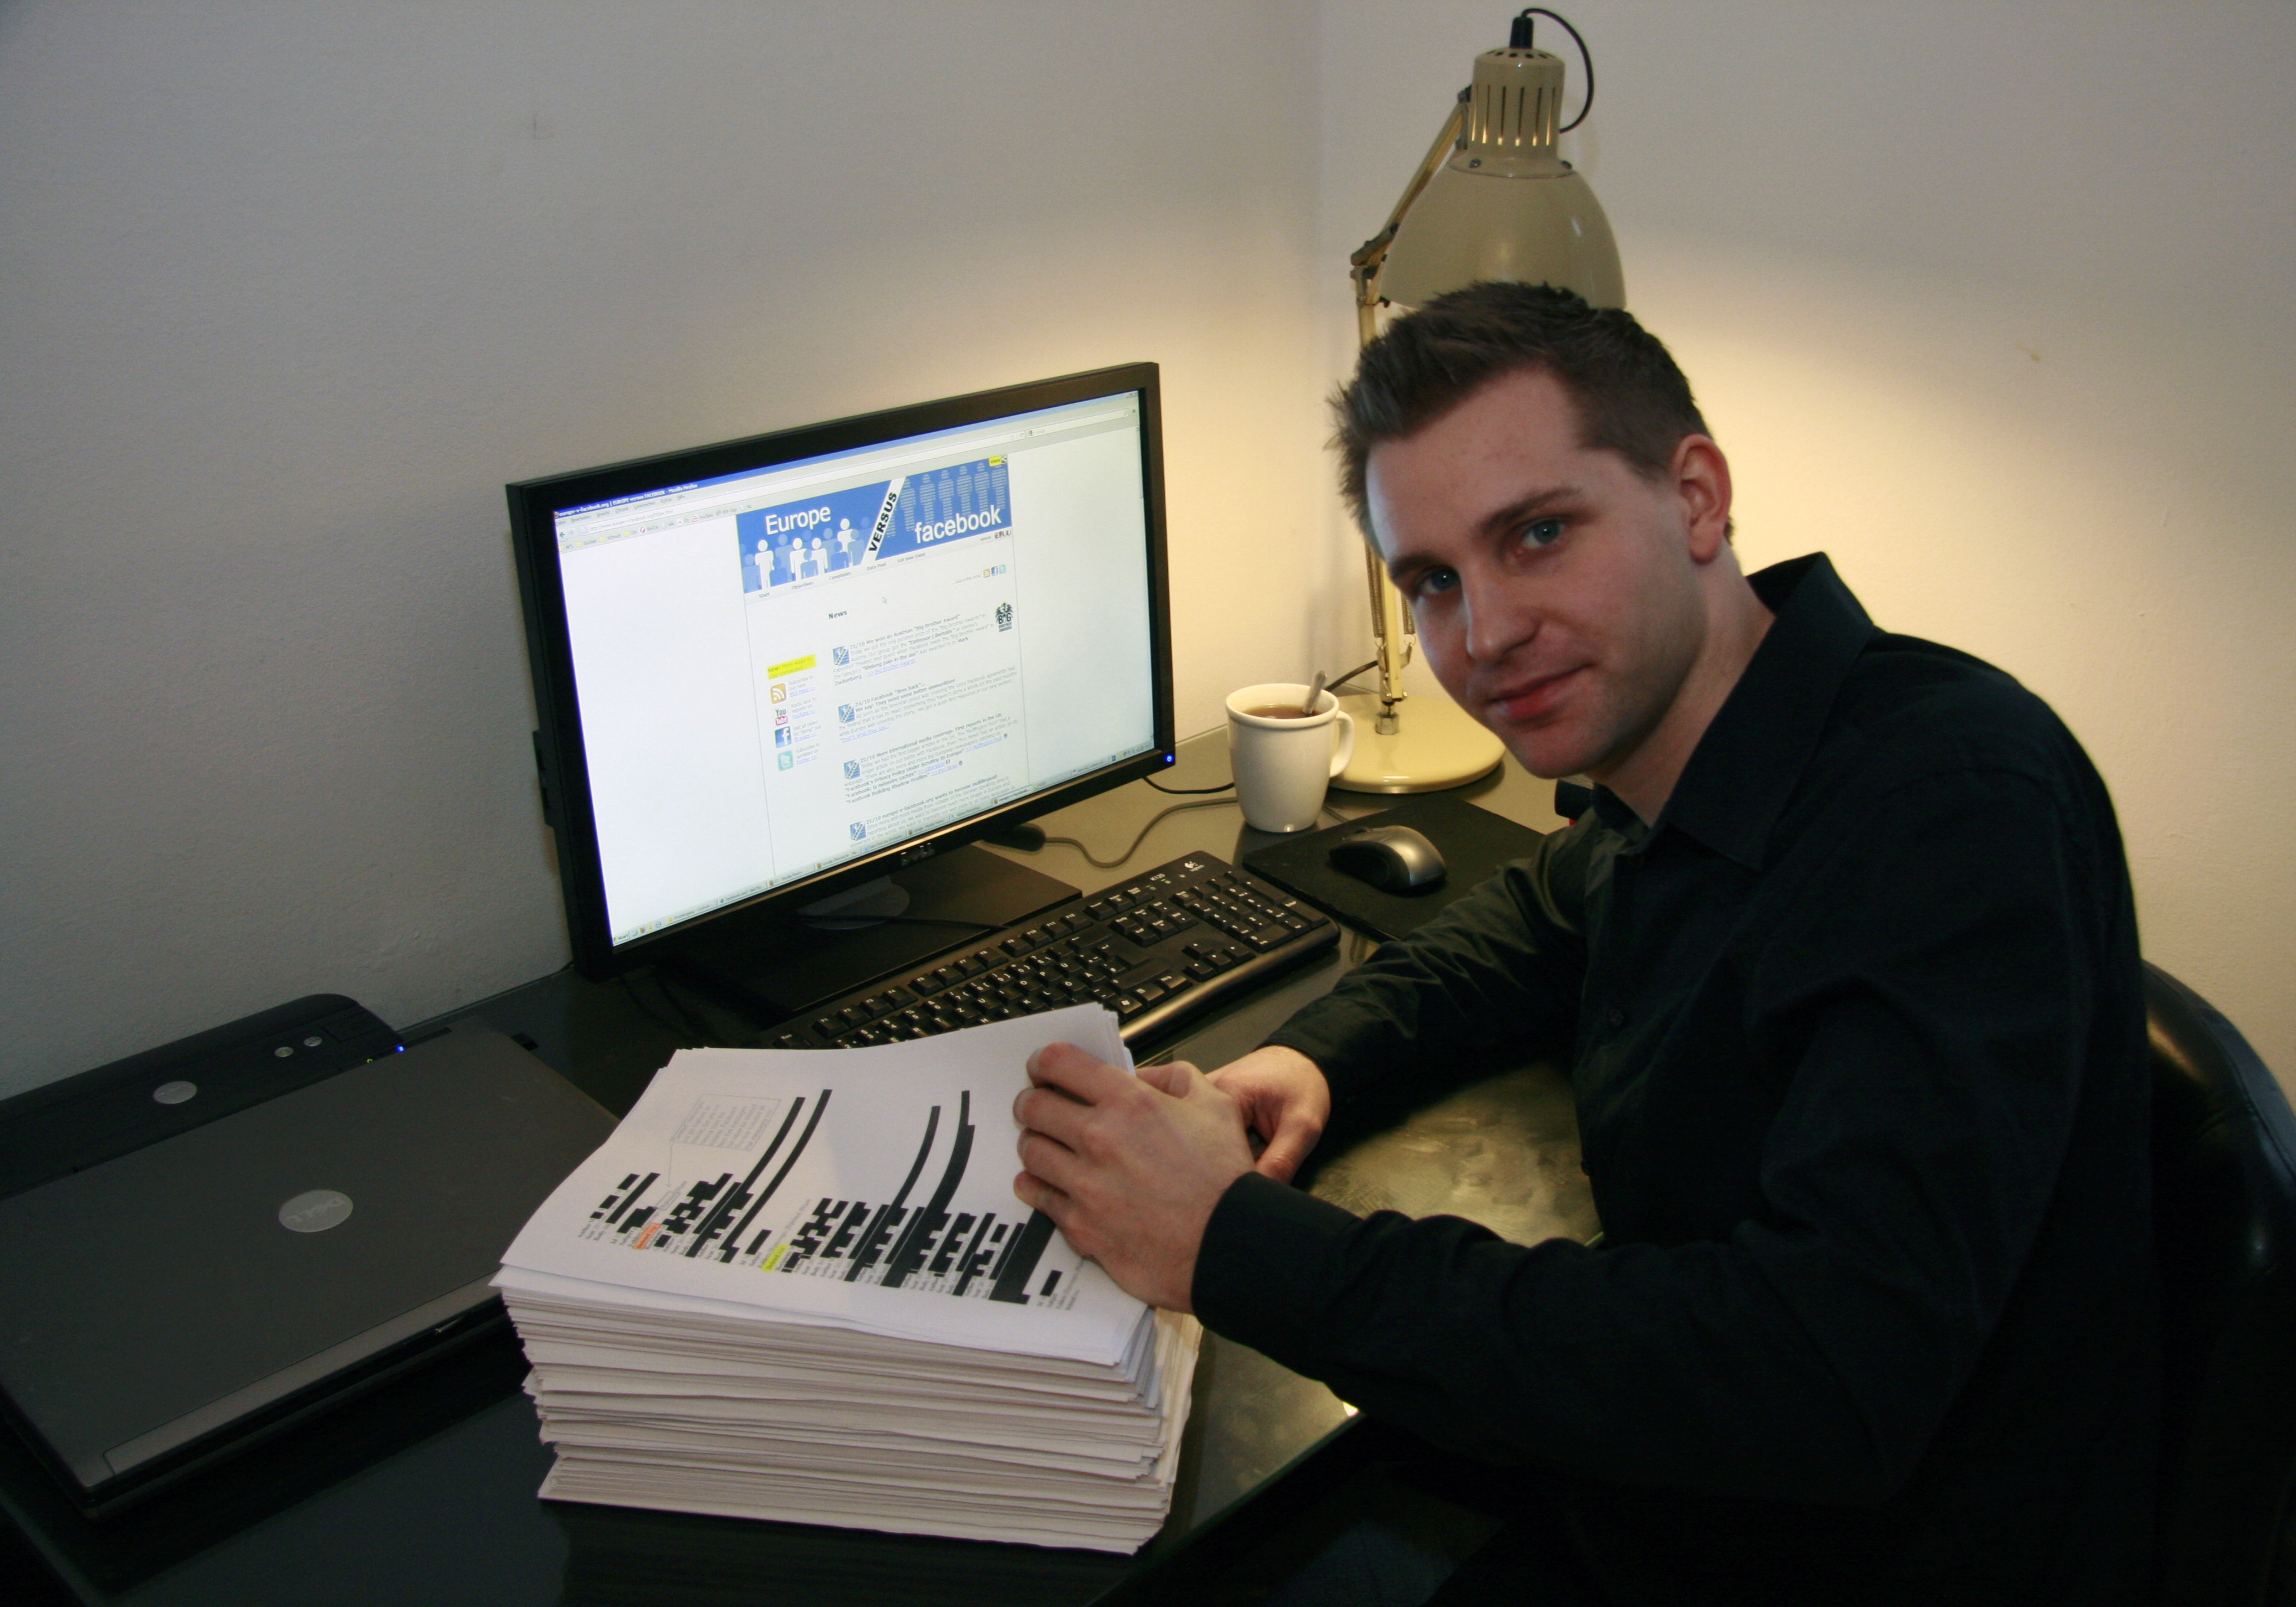 Max Schrems, 25, is leading a group called Europe vs. Facebook to force the social network to comply with EU data protection law.